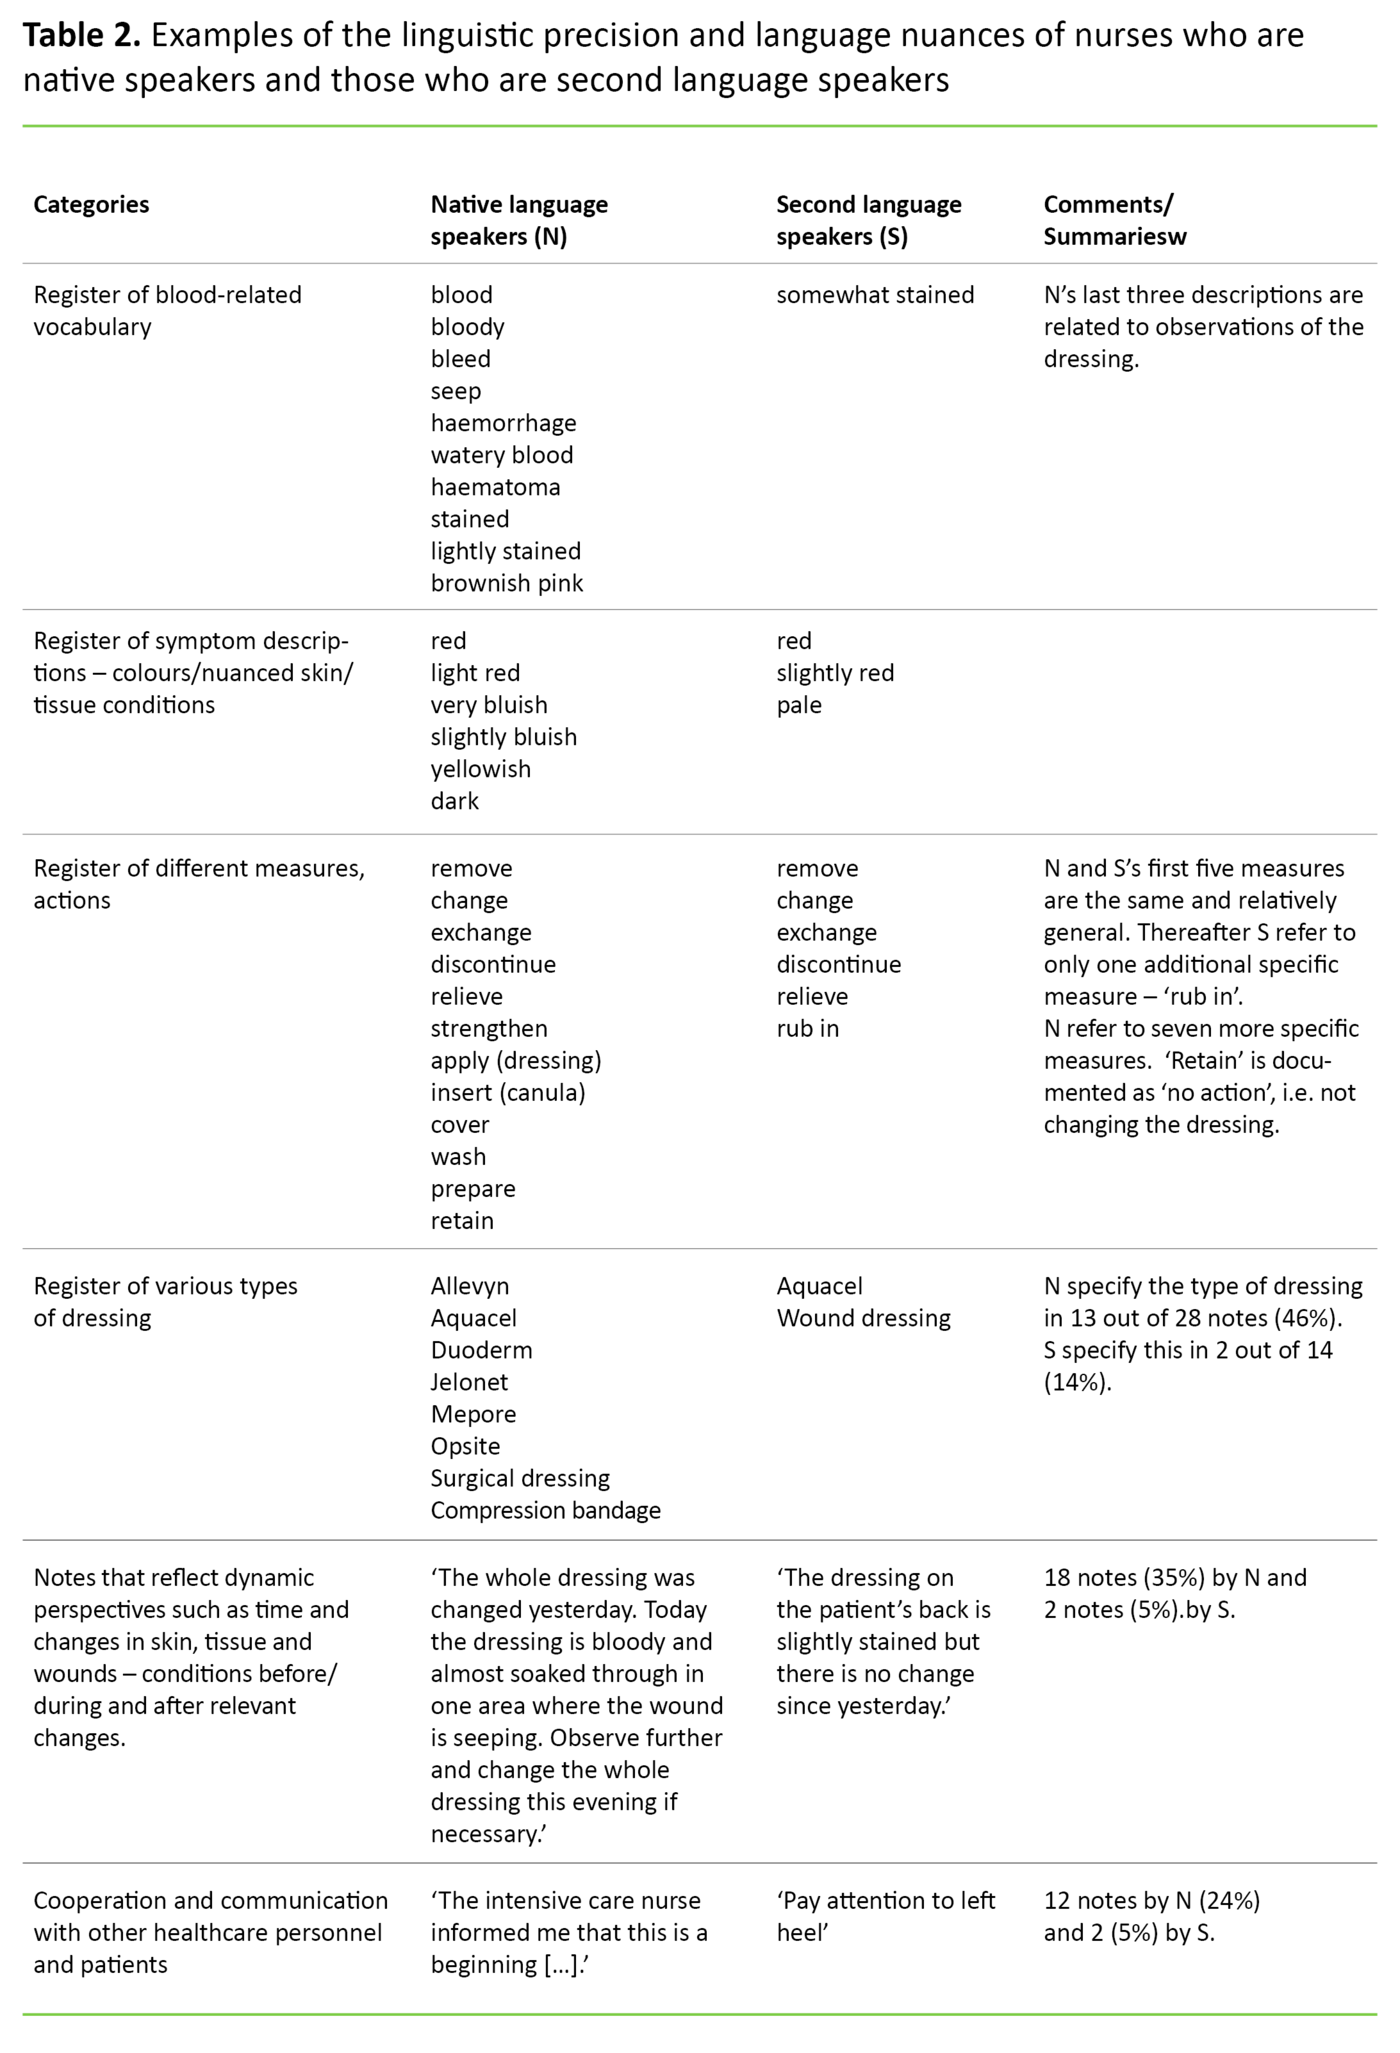 Table 2. Examples of the linguistic precision and language nuances of nurses who are native speakers and those who are second language speakers